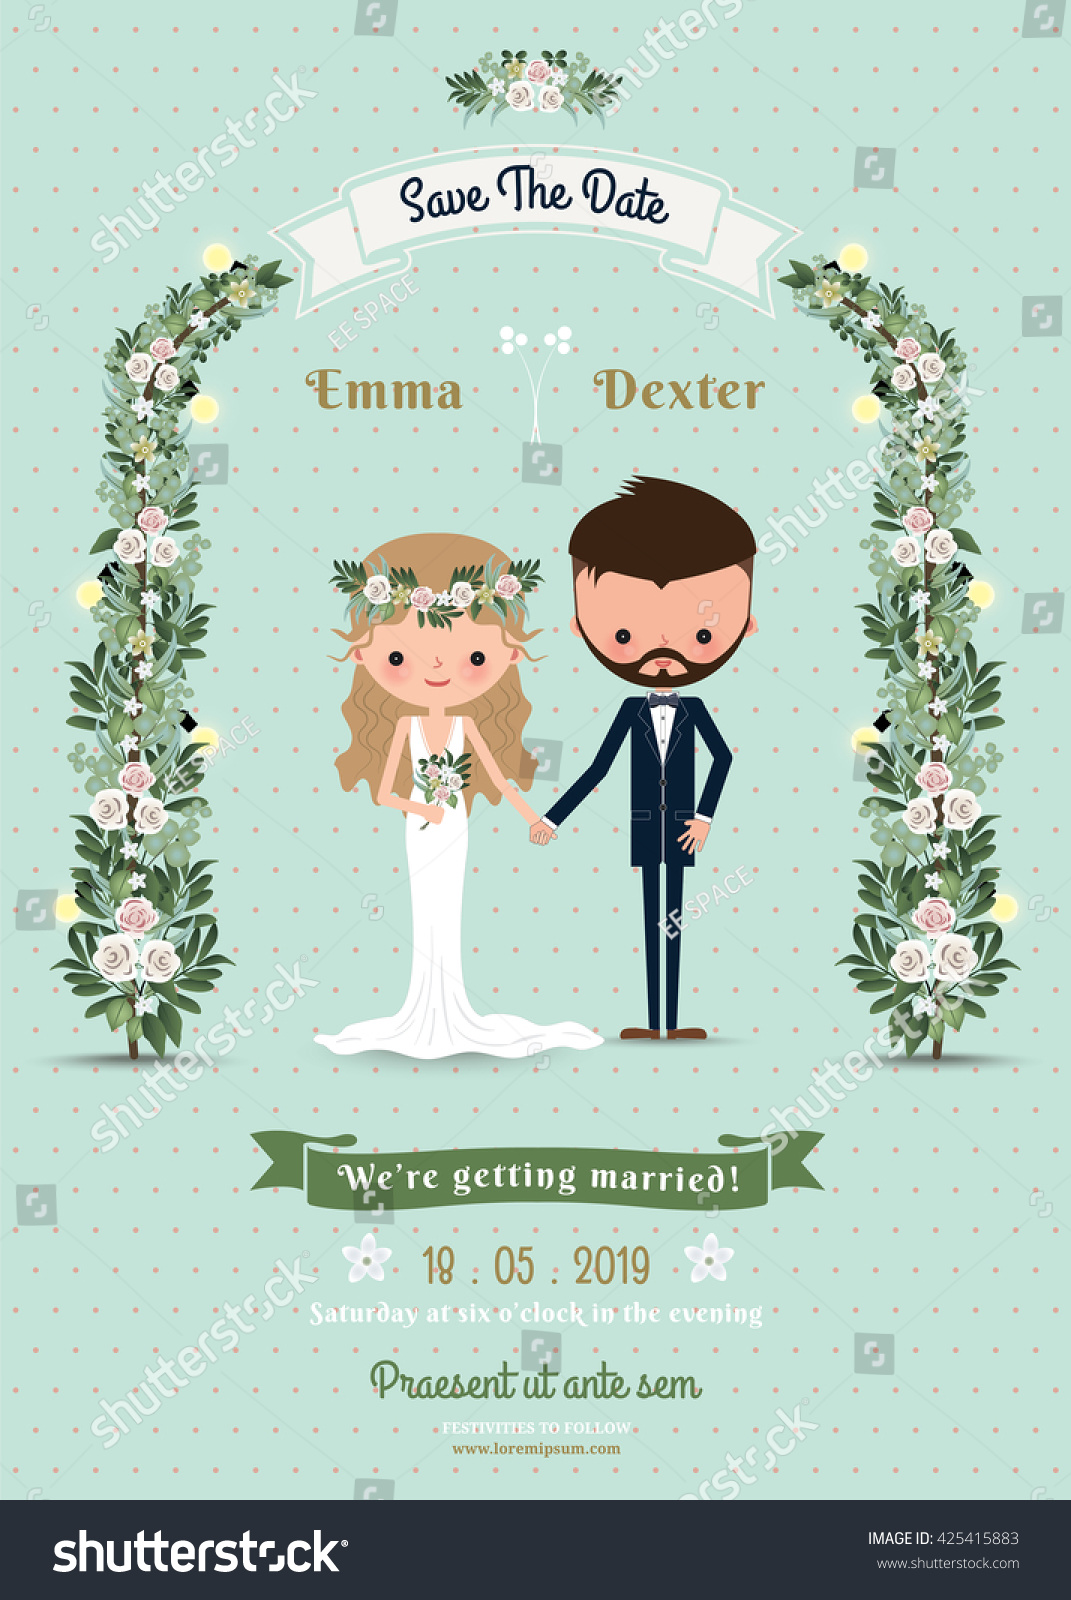 Invitation editor etamemibawa invitation editor stopboris Images